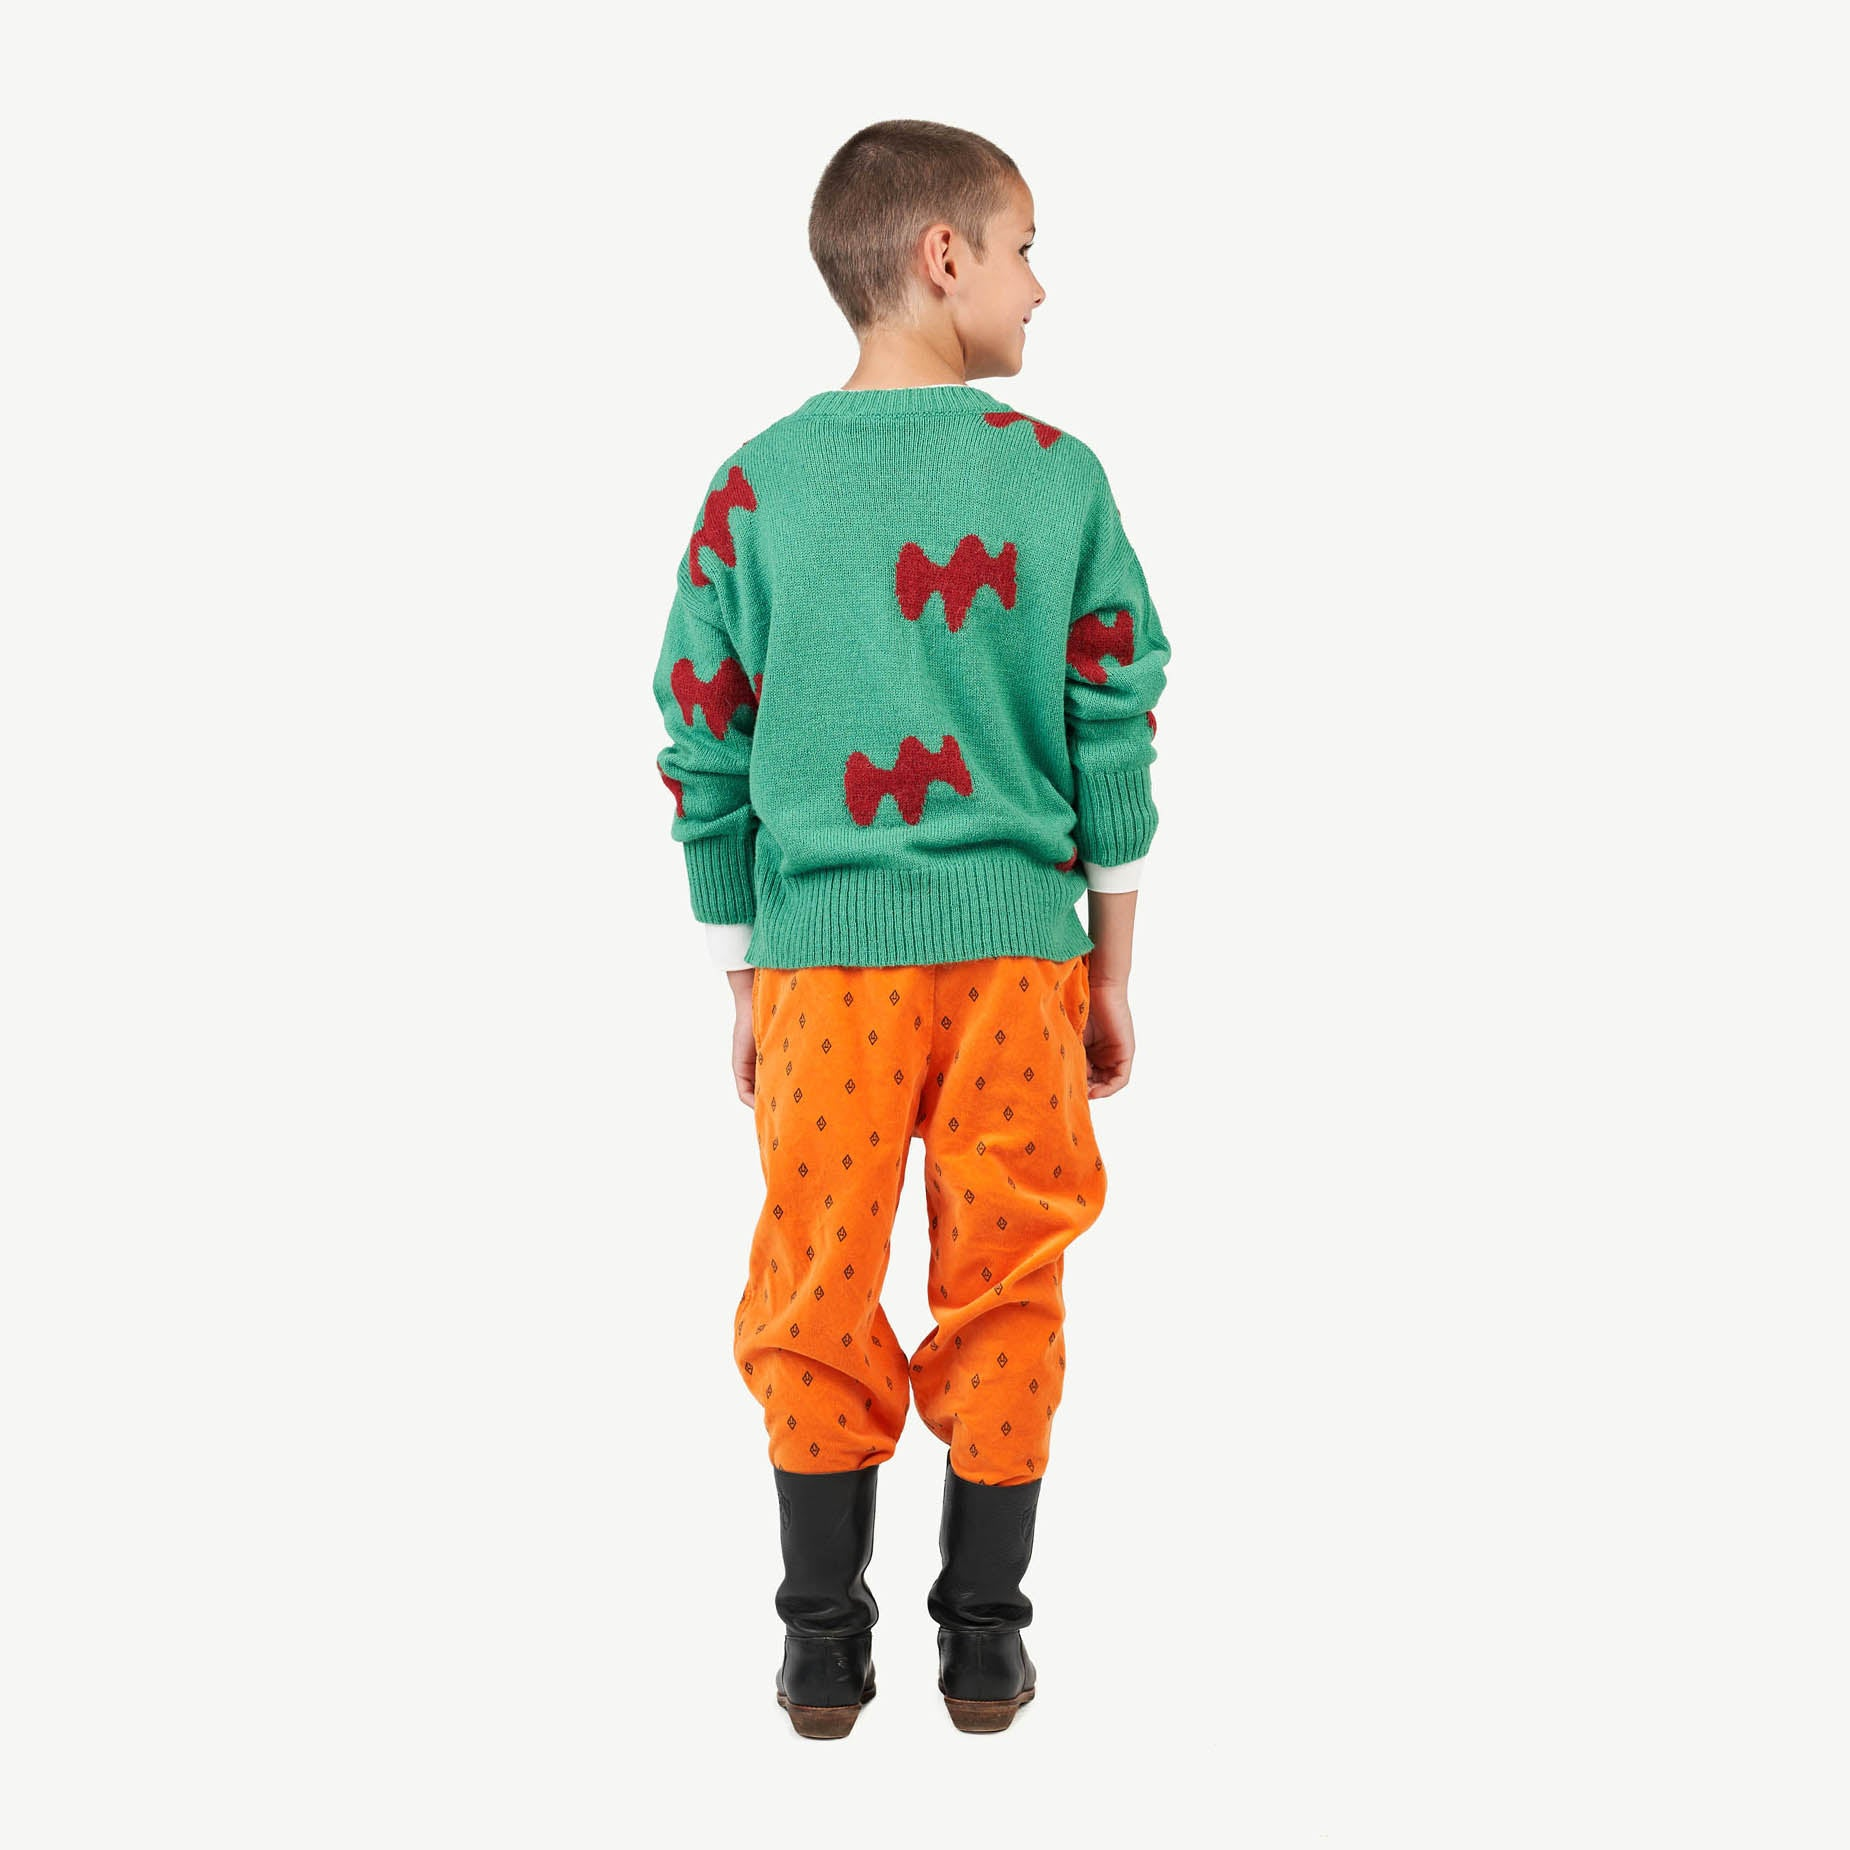 Raven Kids Sweater Green